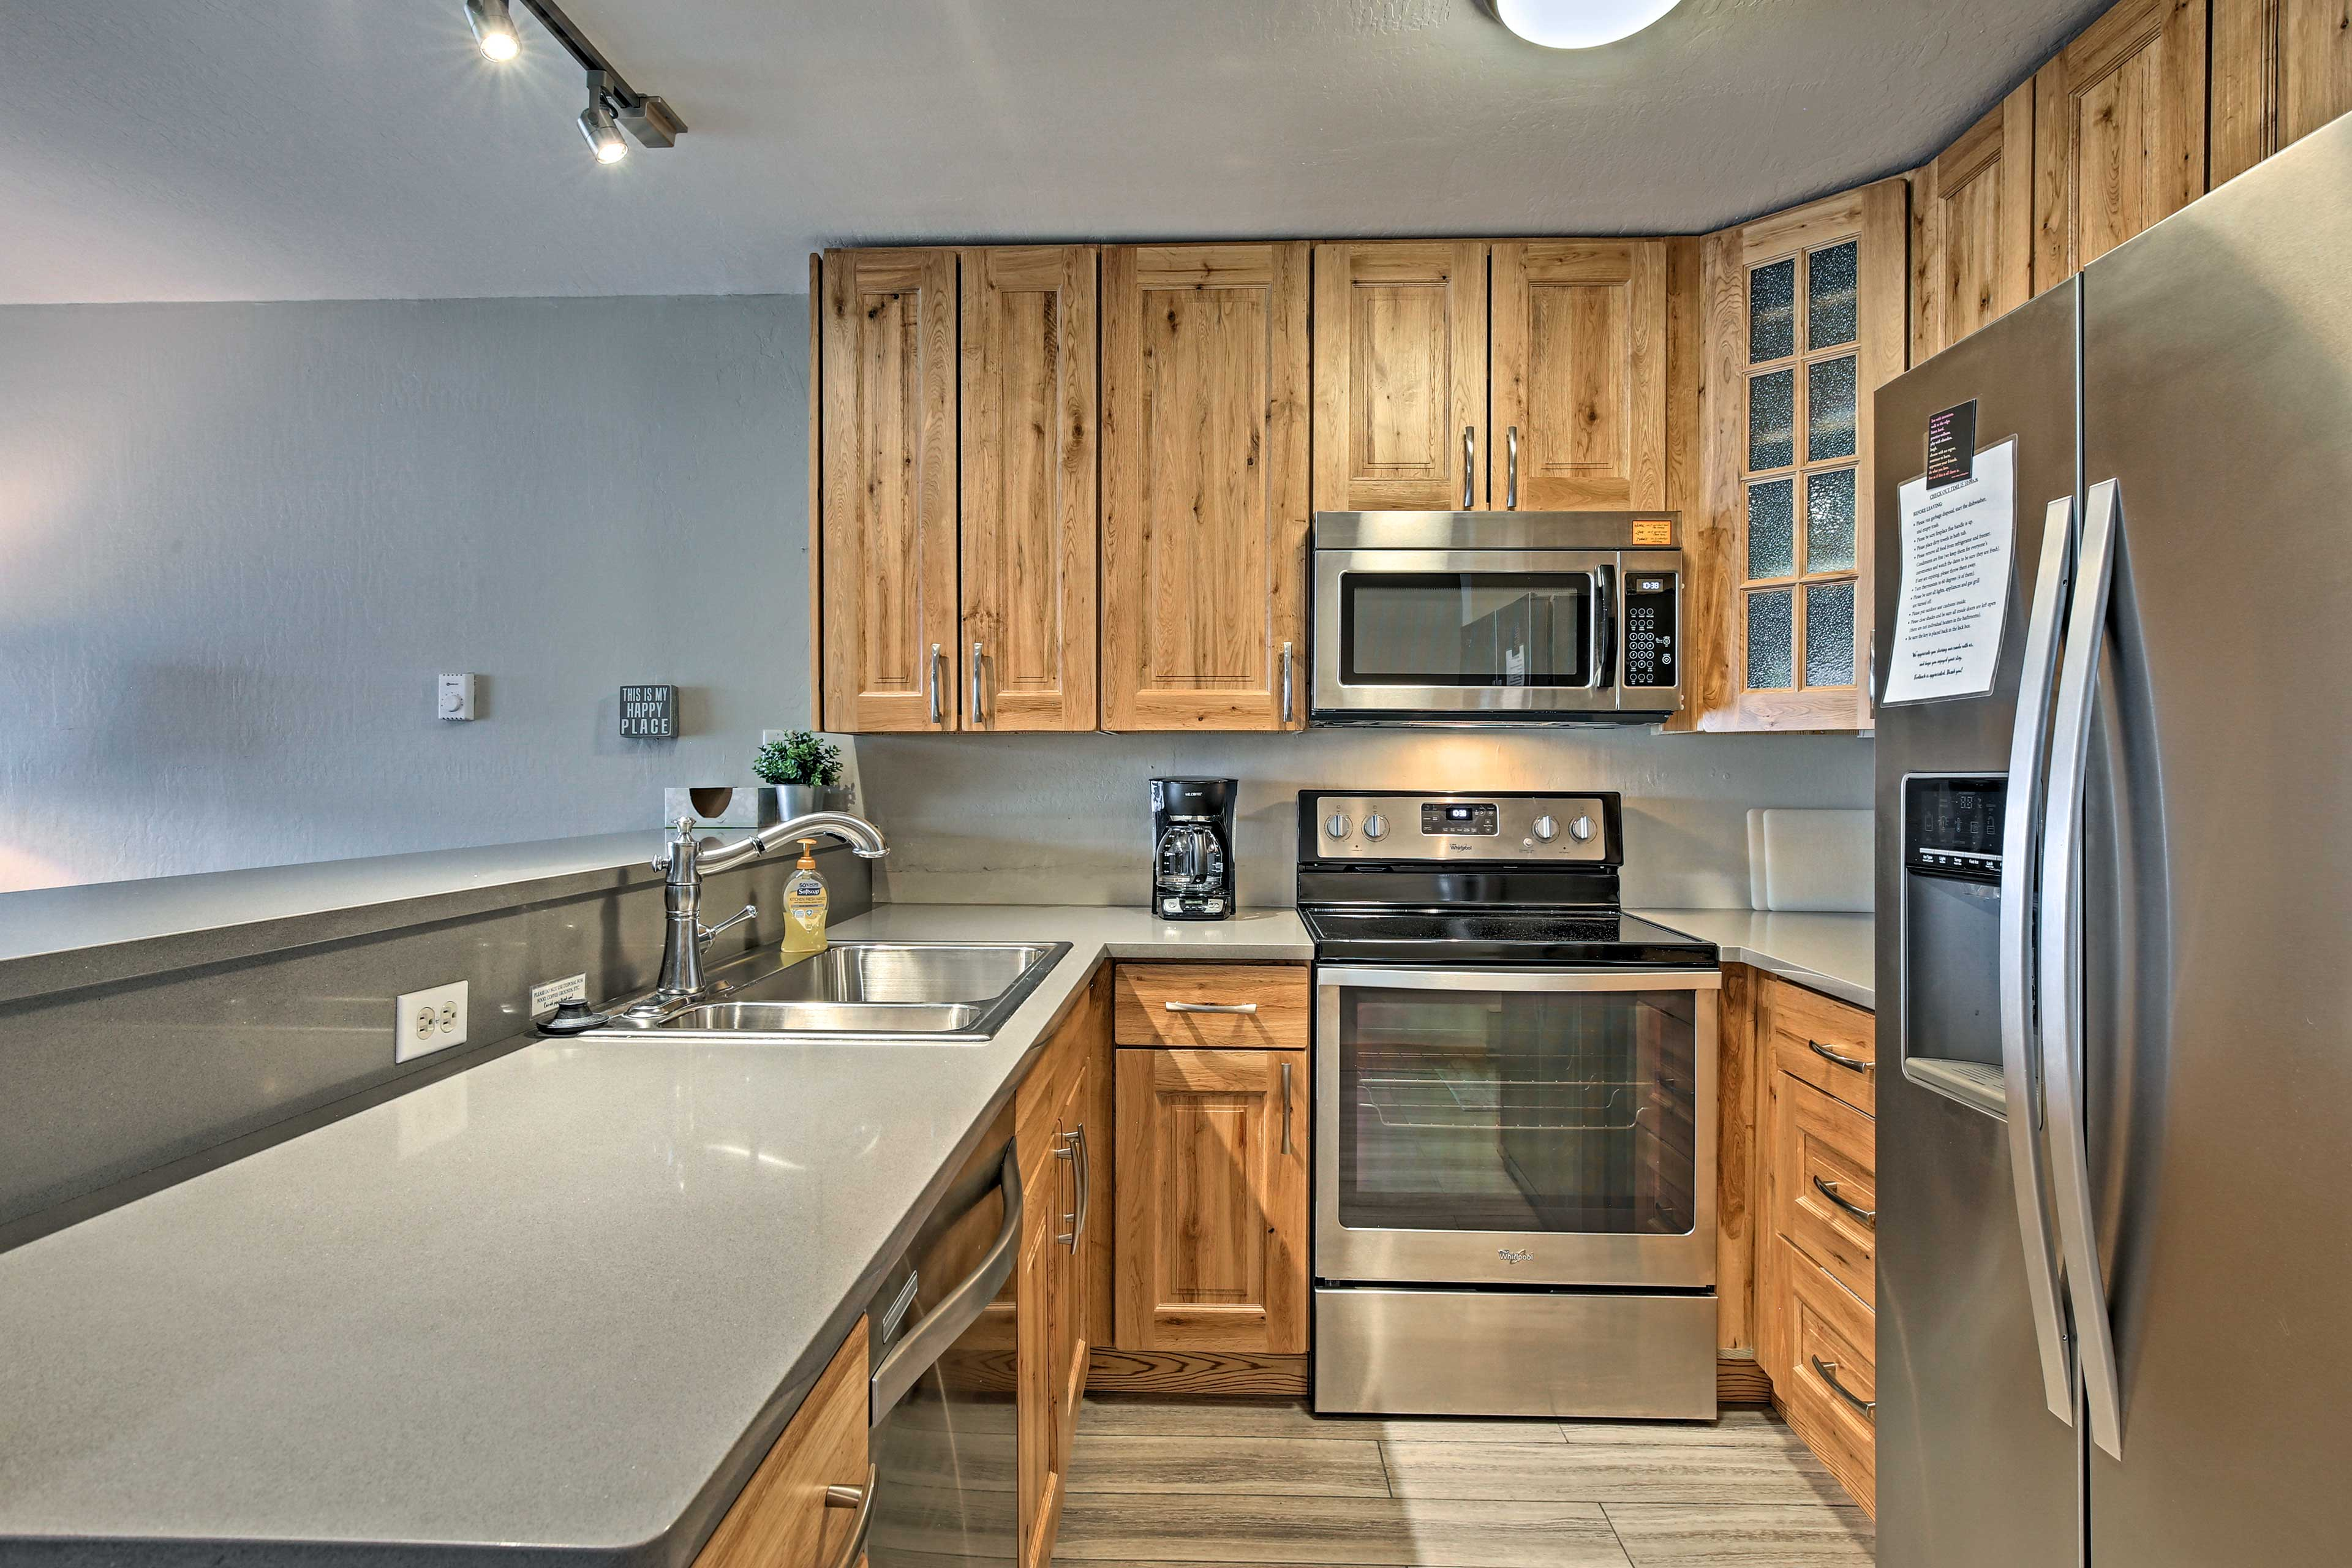 Fully Equipped Kitchen | Updated Appliances